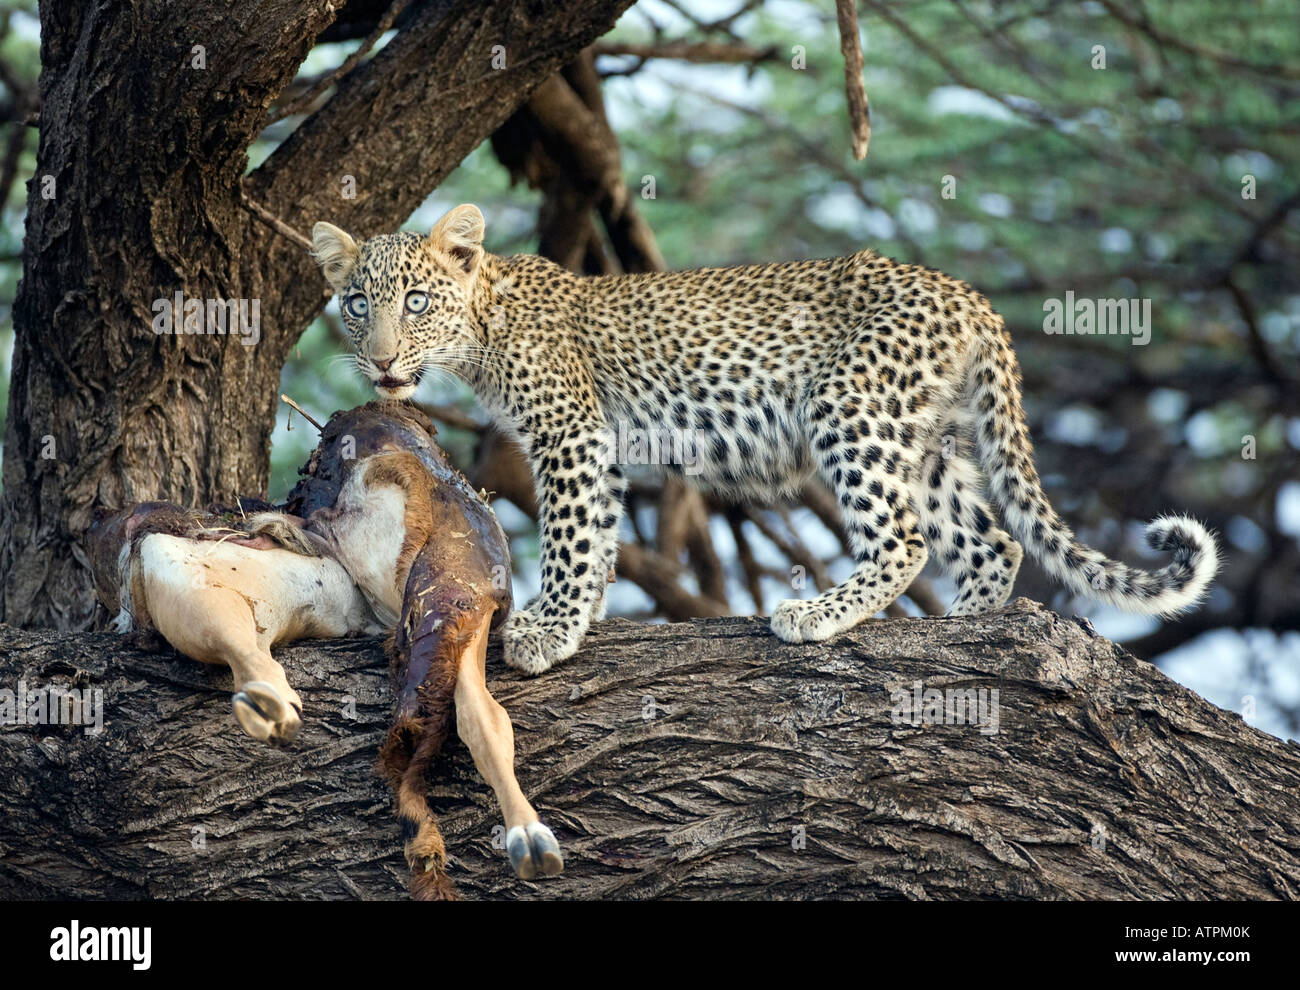 Leopard cub (panthera pardus) with Impala kill in tree - Stock Image